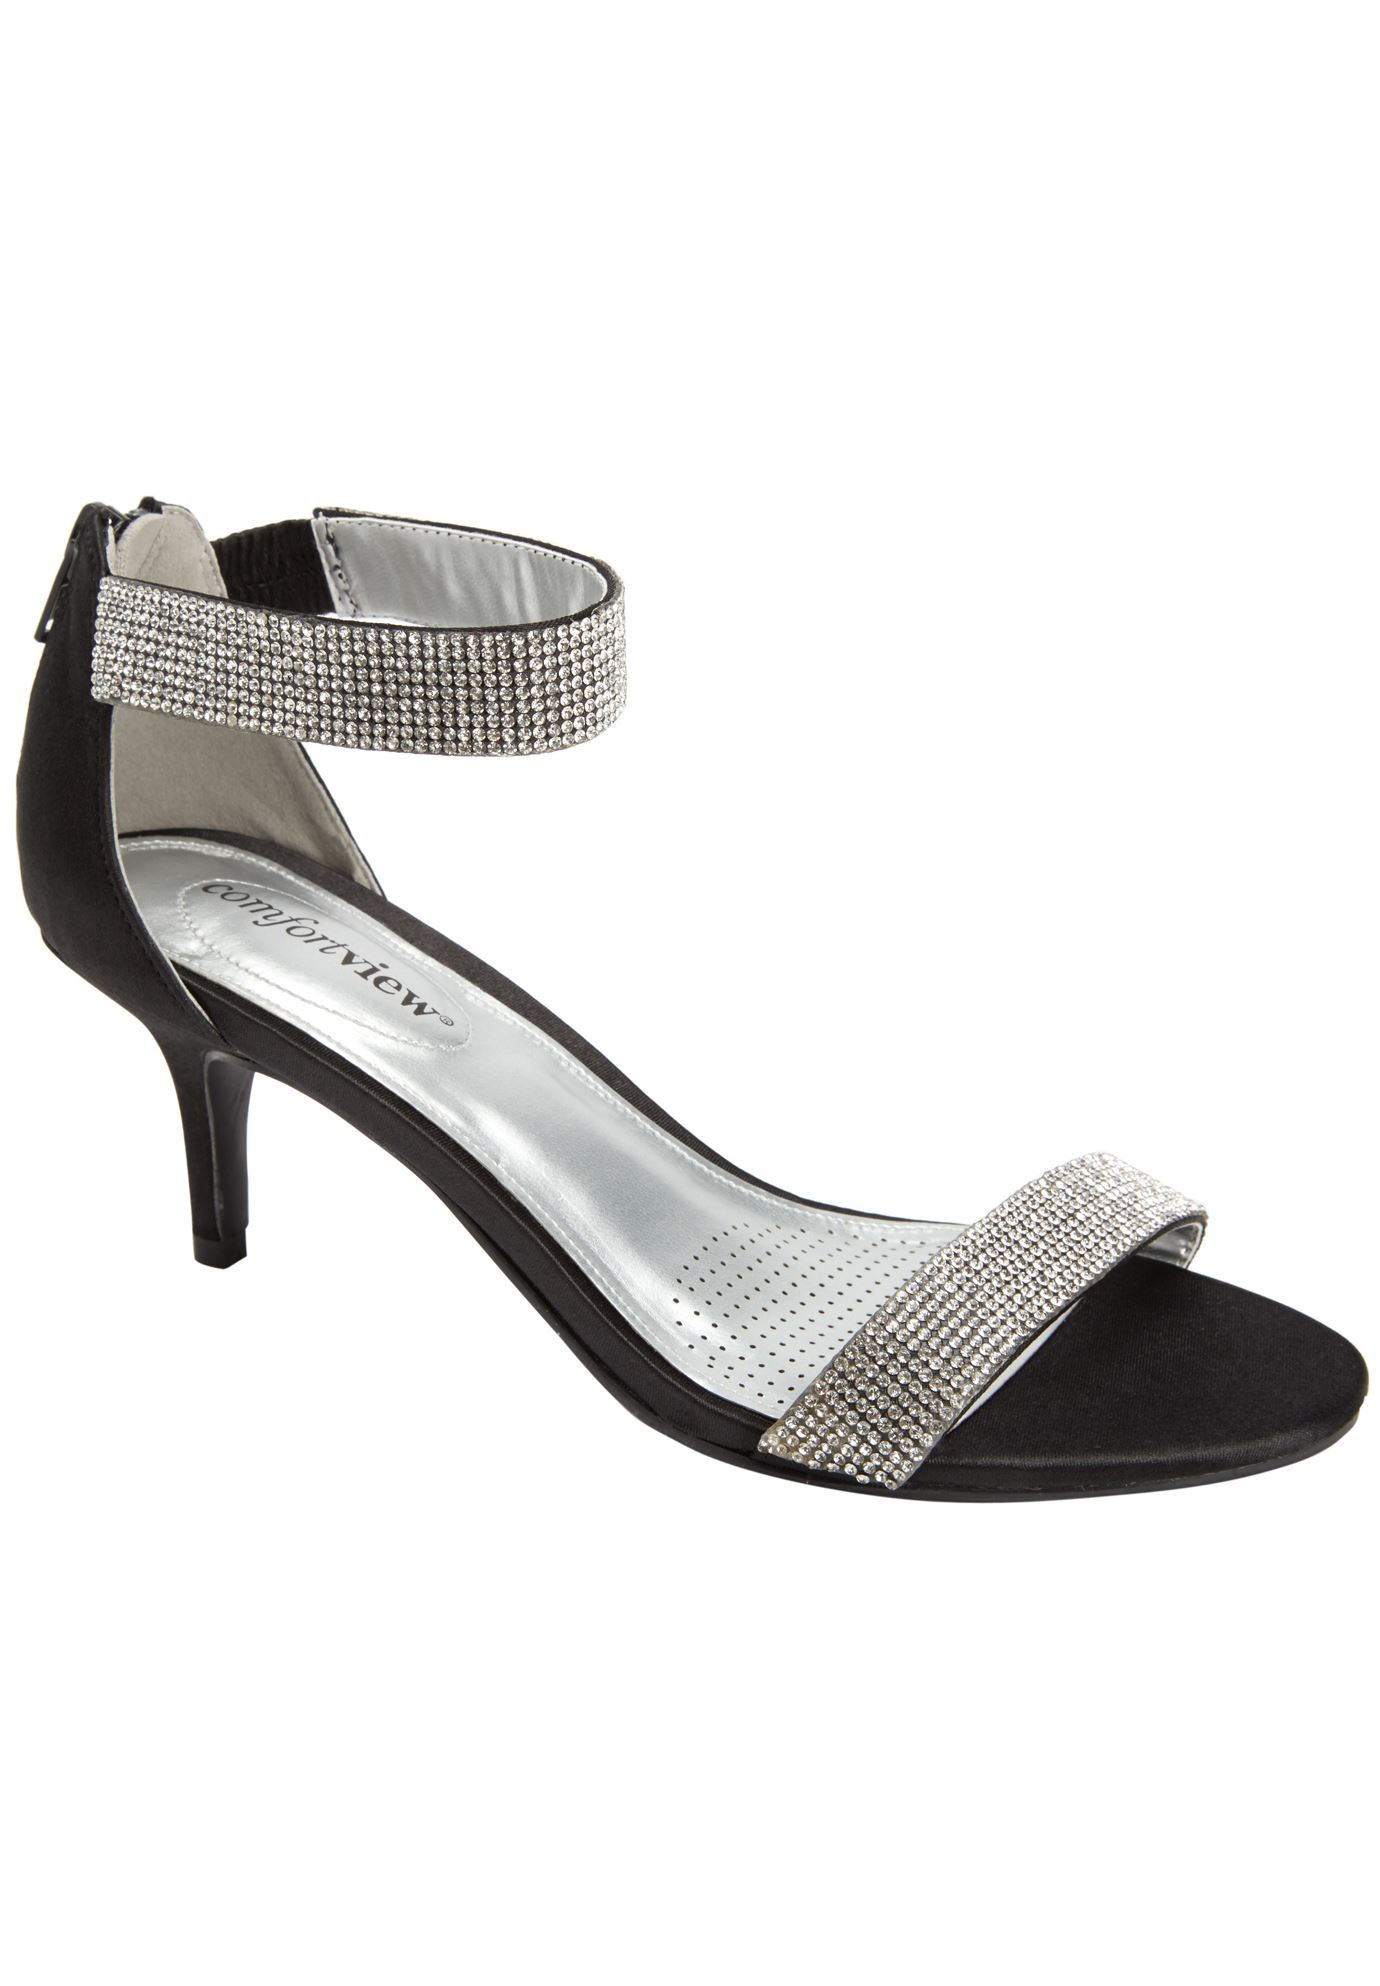 Our beautiful, chic evening shoes are just what you need